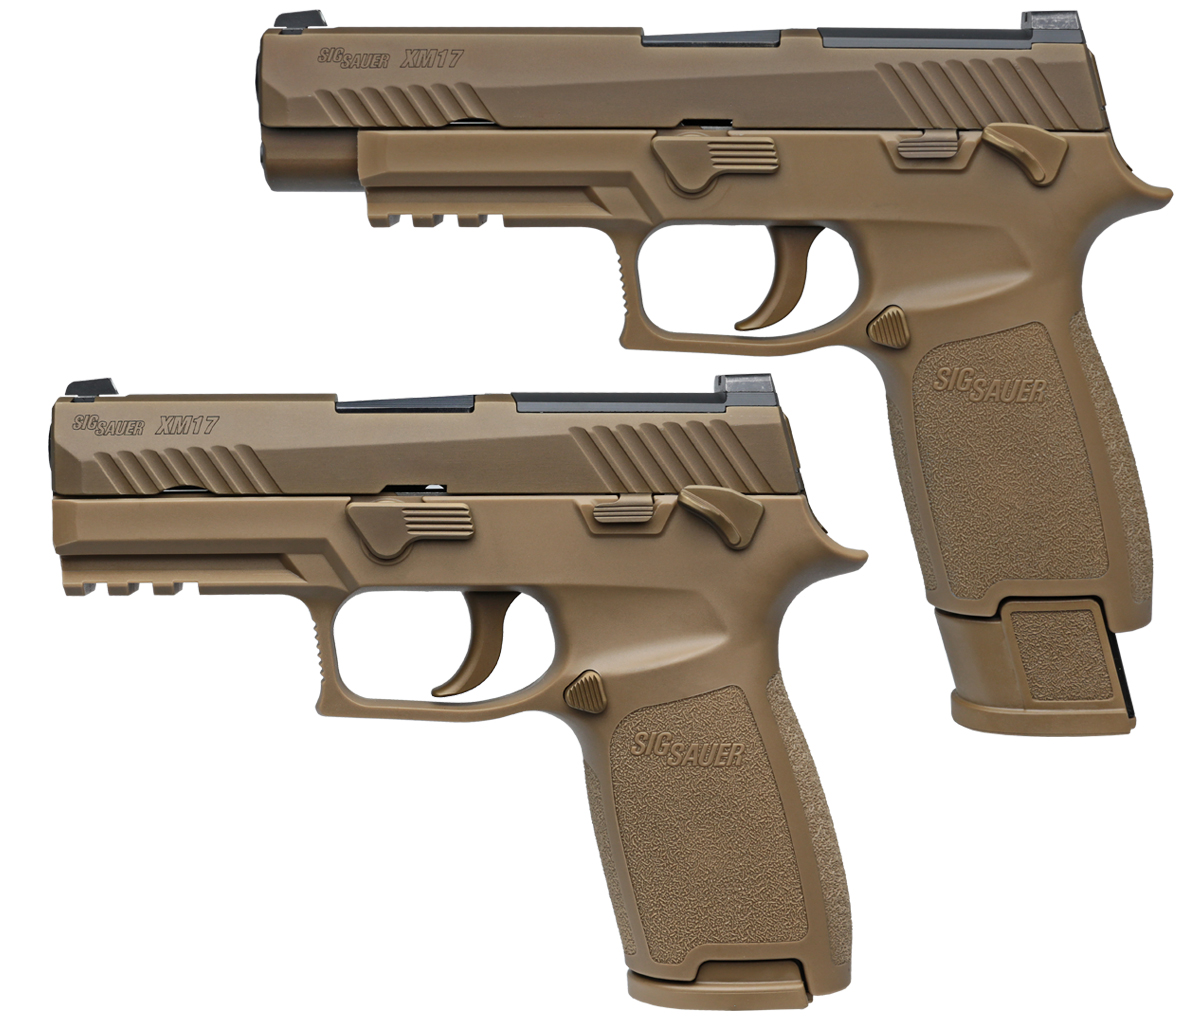 GRAPEVINE: US Army Pays $207 Per Pistol to SIG SAUER for M17 Modular ...